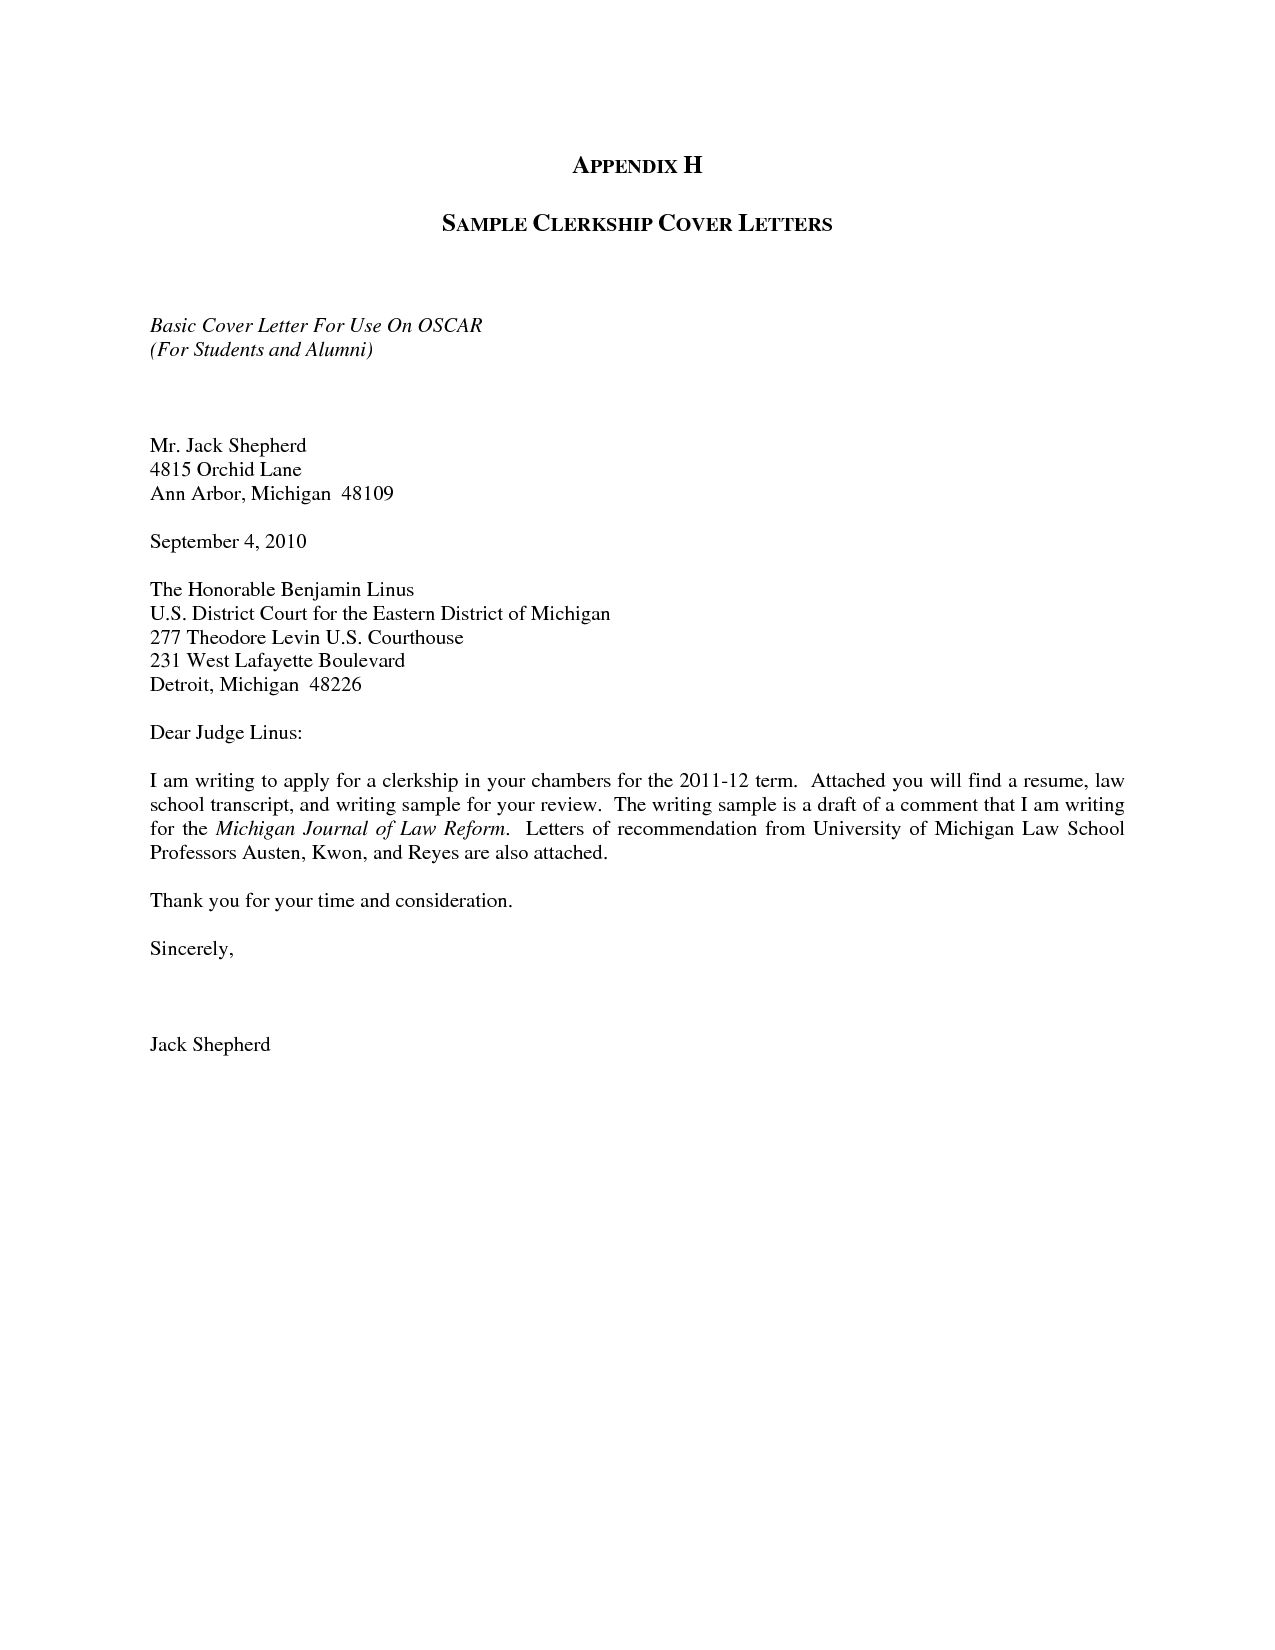 Samples Of Cover Letter For Resume New Basic Cover Letters Sles The Best Letter Sle  News To Go 2 .